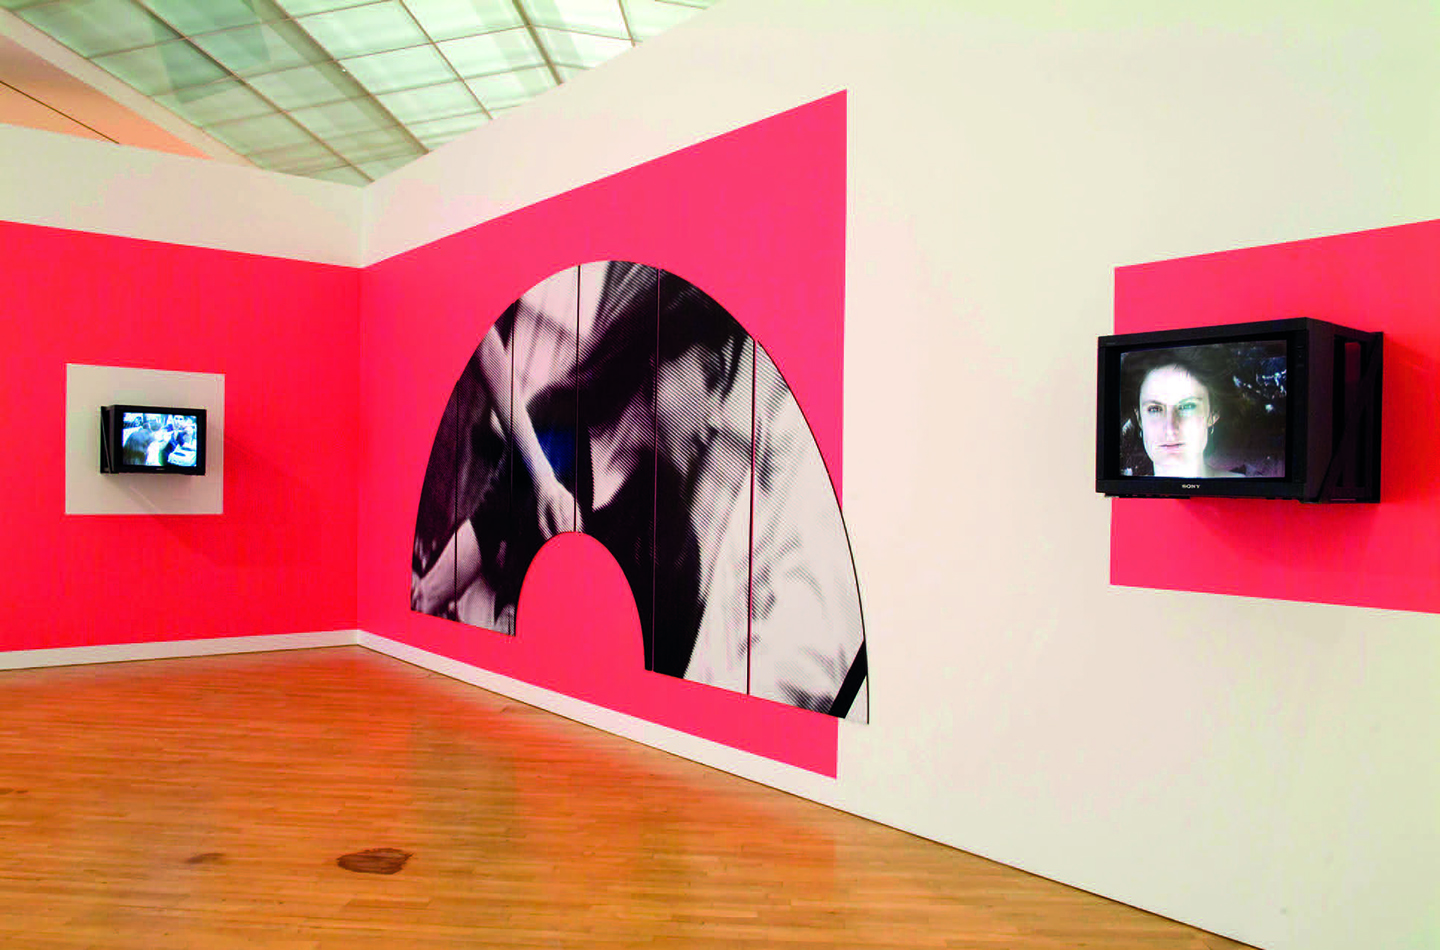 Dara Birnbaum, Damnation of Faust, 1984, installation view, S.M.A.K., Ghent, 2009. Courtesy: the artist and Marian Goodman Gallery, New York/Paris